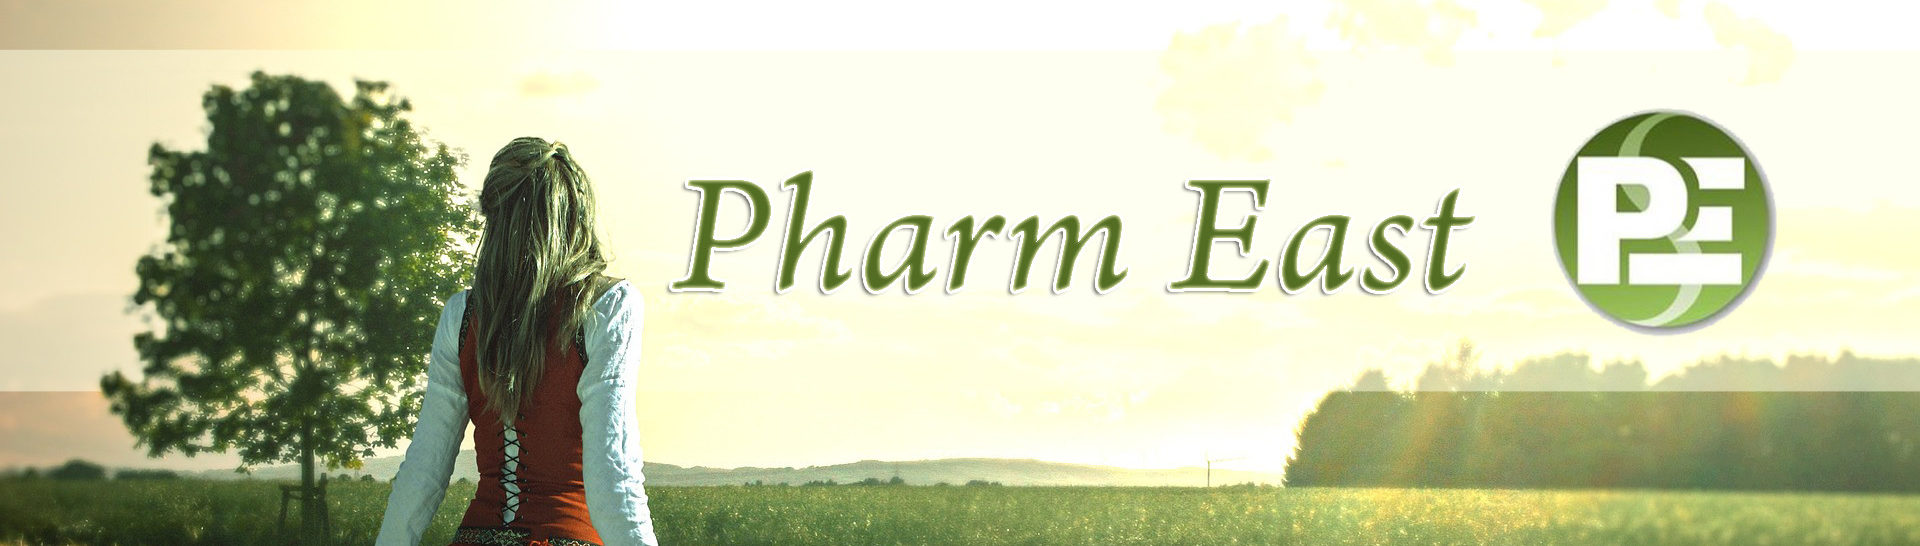 PHARMEAST